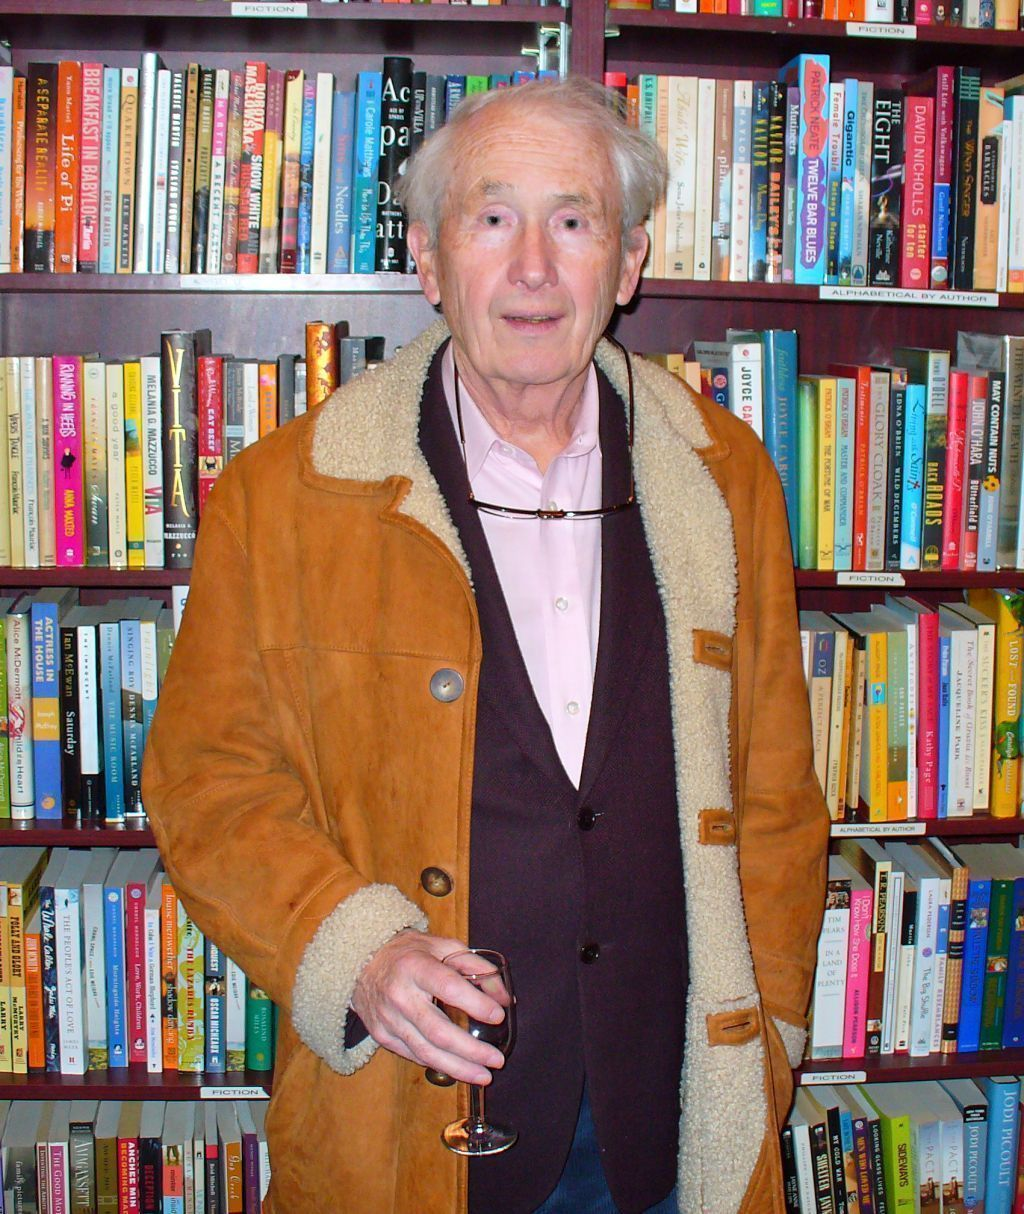 frank mccourt essay tis Frank mccourt was born in new york in a 1997 new york times essay, mccourt wrote about his experiences teaching immigrant mccourt also authored 'tis.